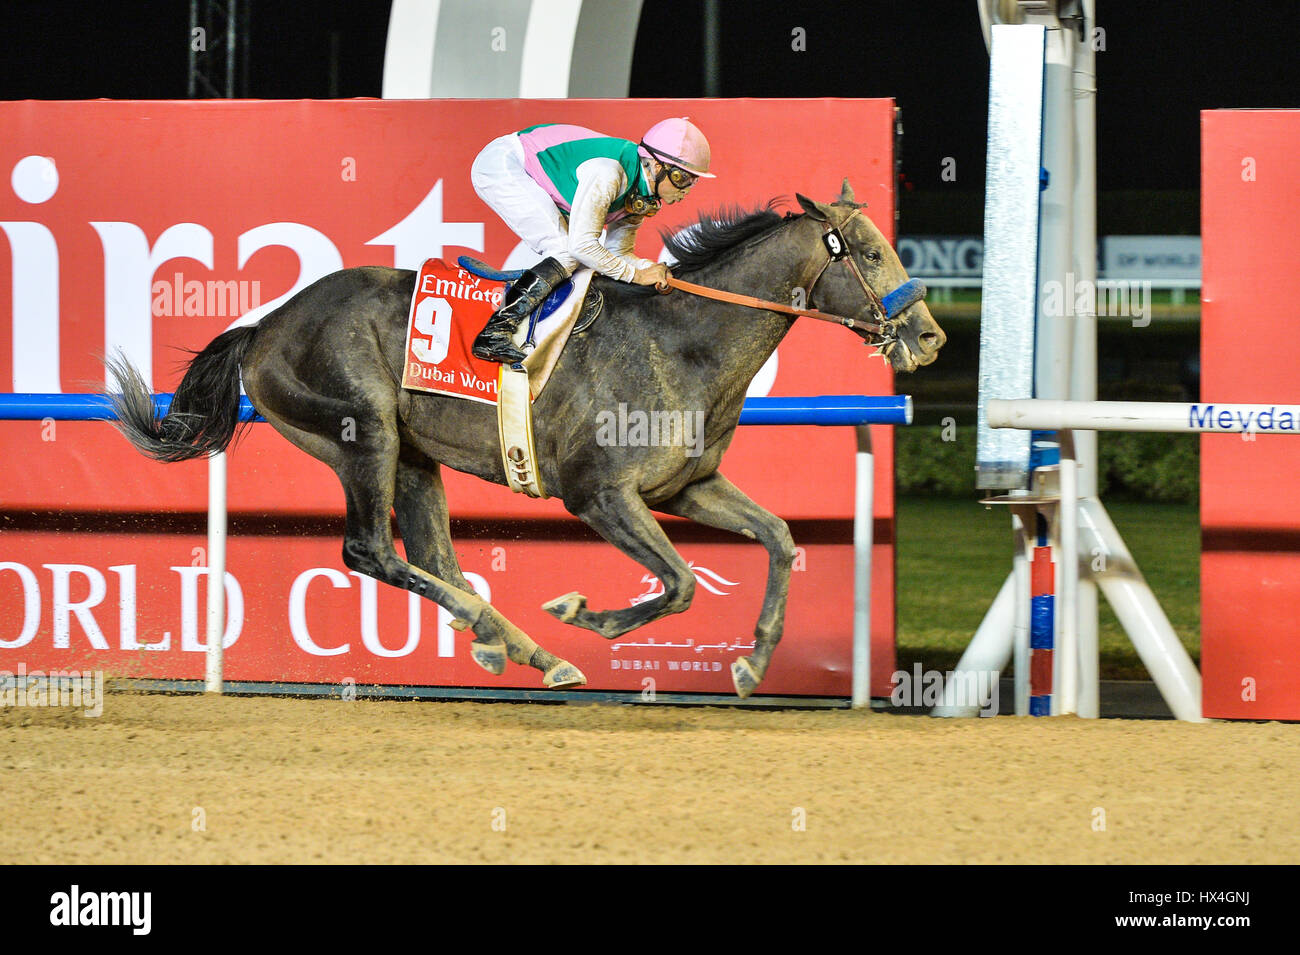 DUBAI, UAE, 25th March 2017. Arrogate, ridden by jockey Mike Smith wins the Dubai World Cup 2017 race. Trained in Stock Photo